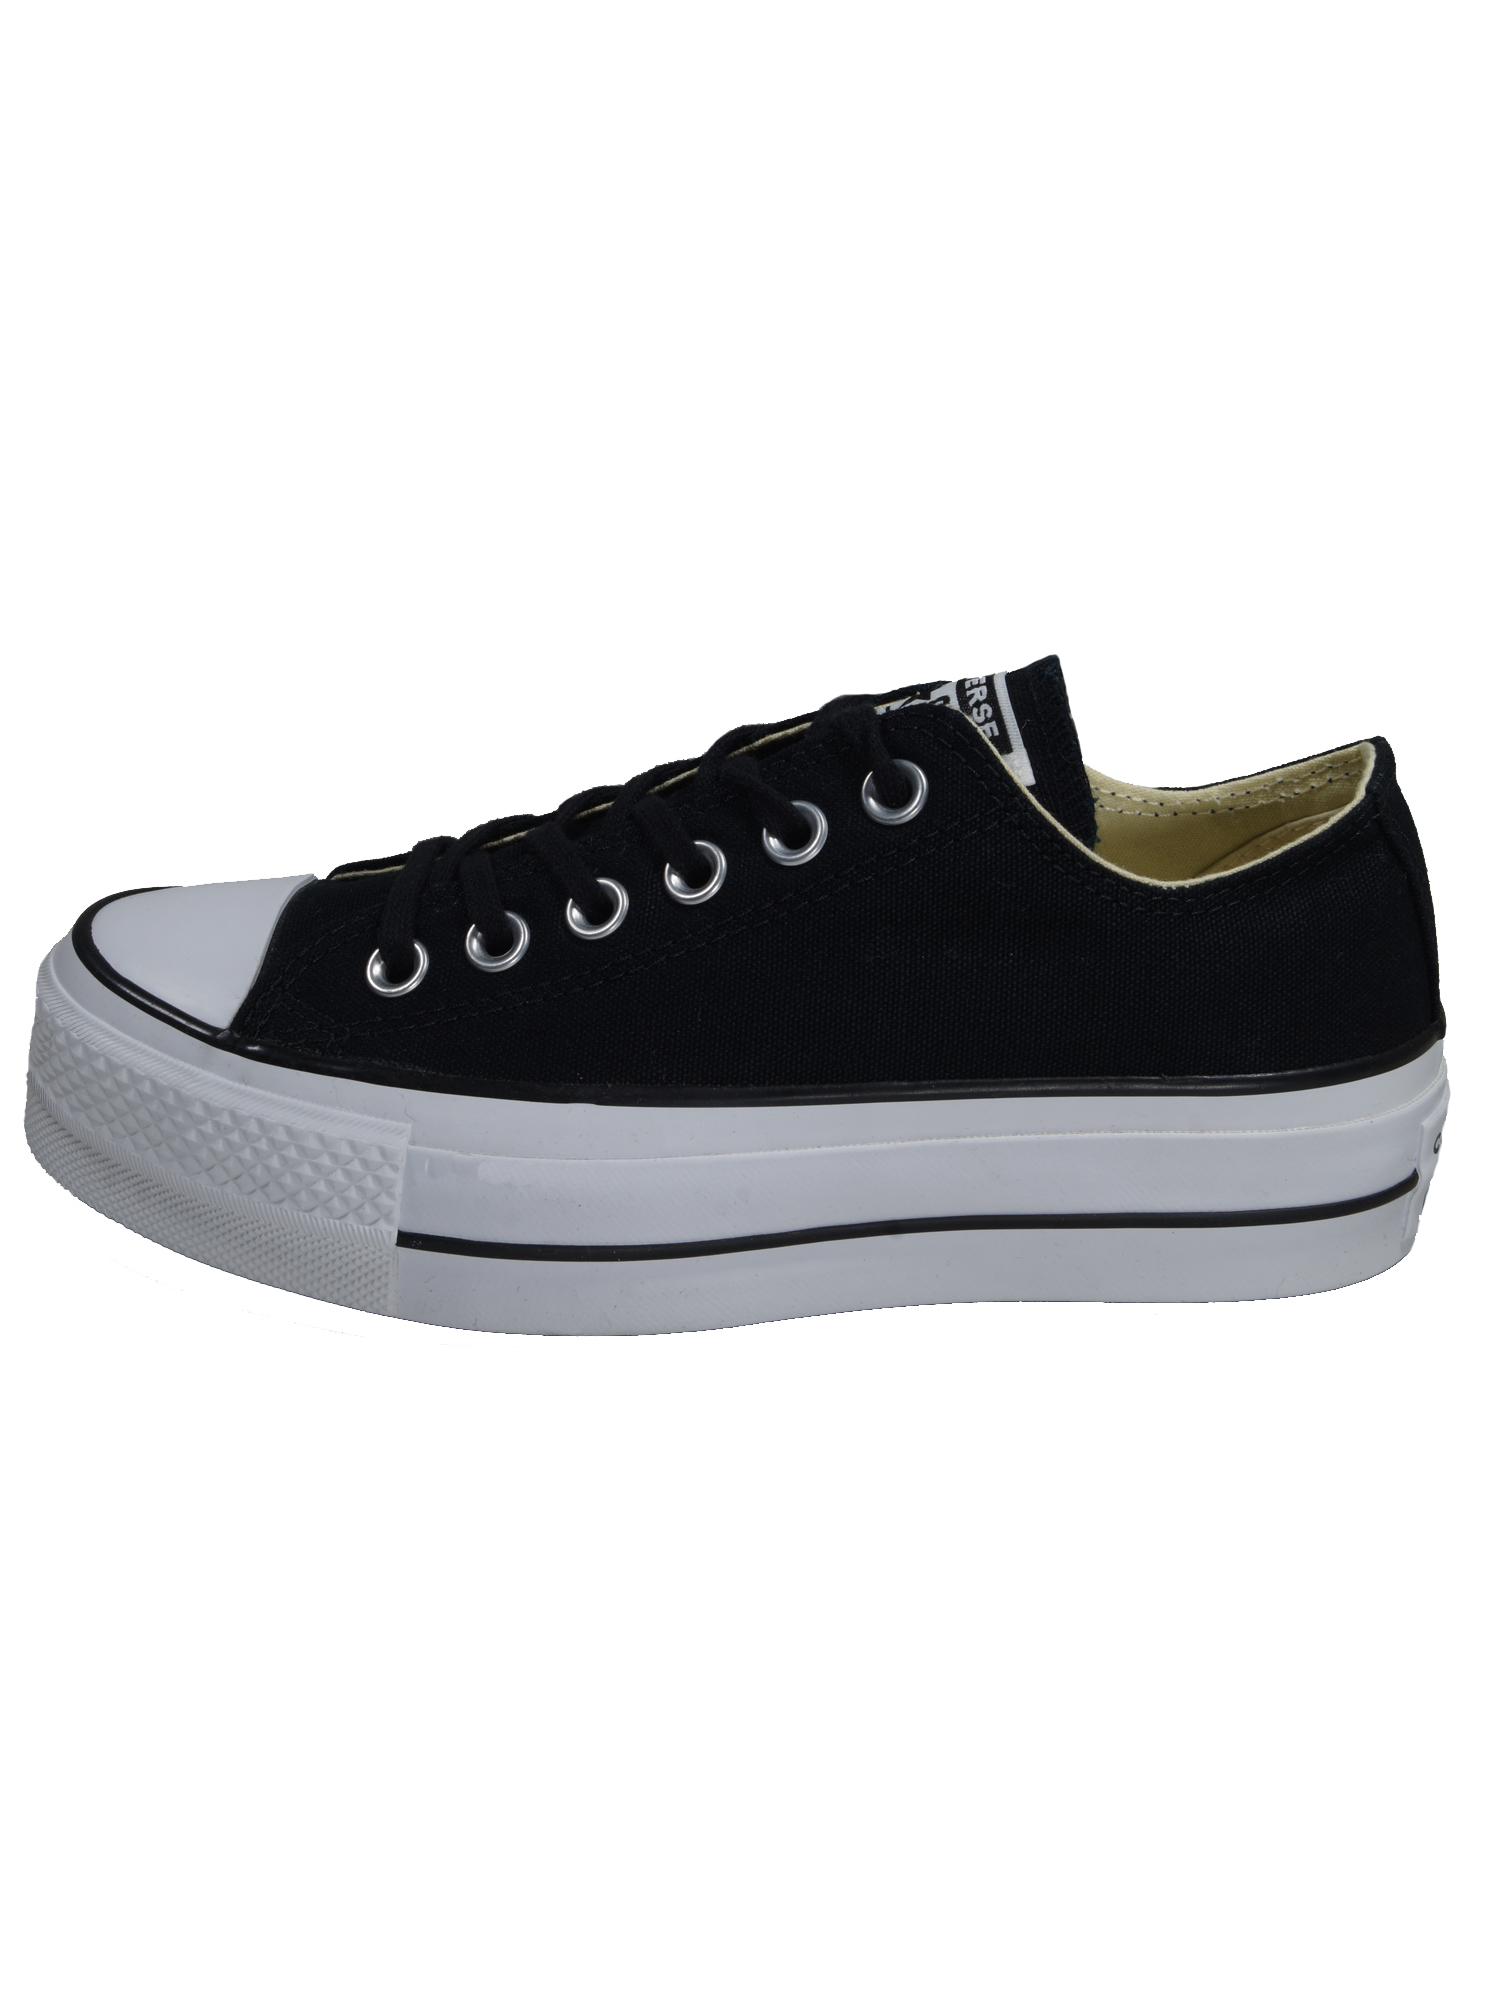 Converse Damen Schuhe CT All Star Lift Ox Schwarz Leinen Sneakers 39